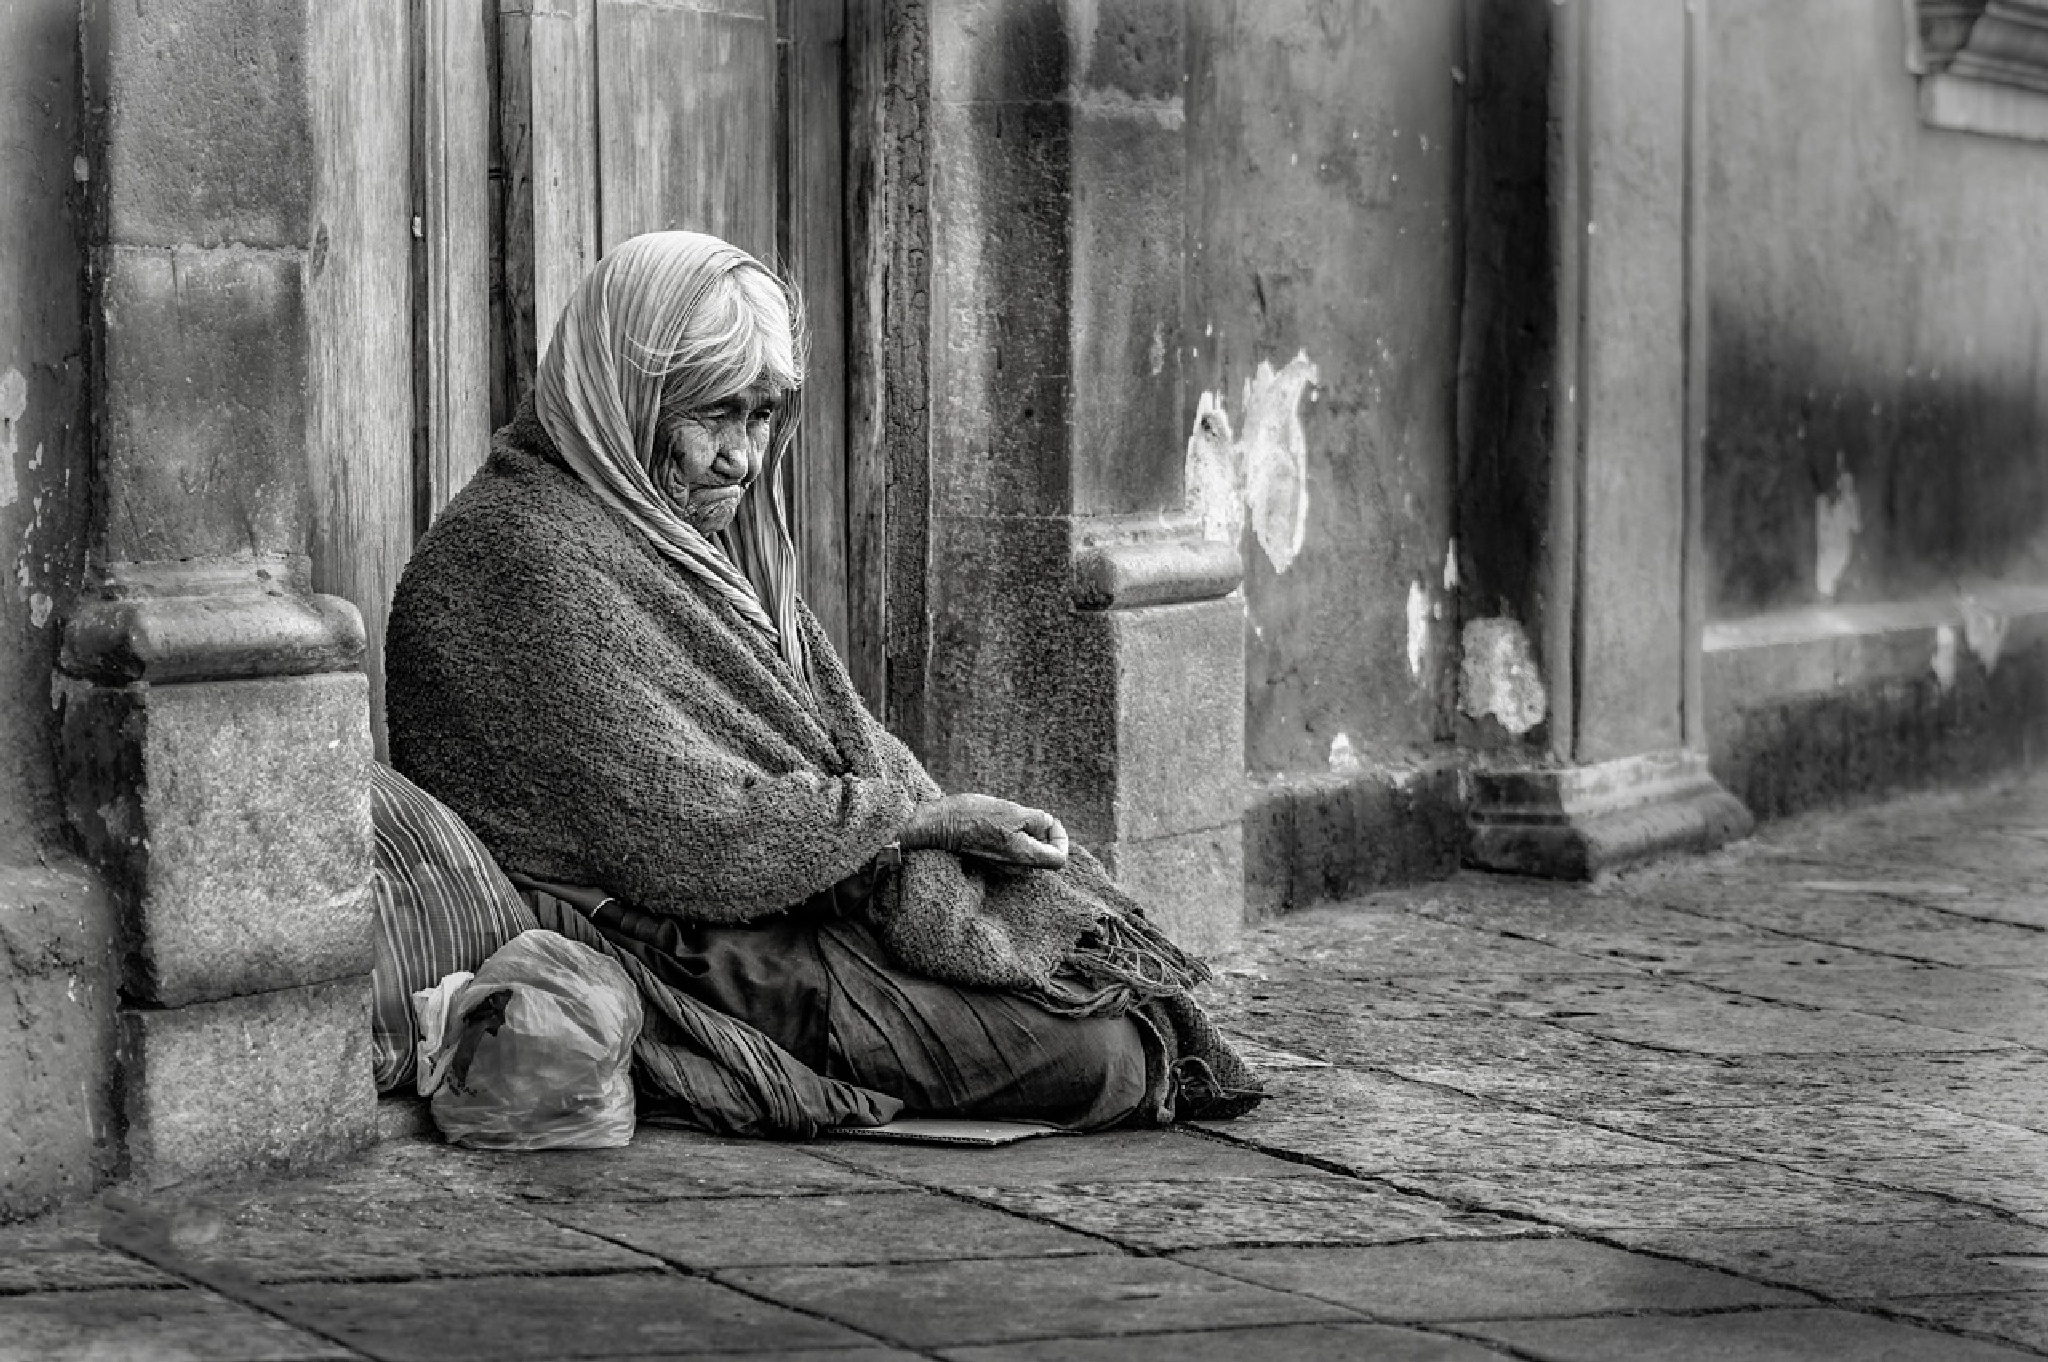 Waiting for a coin. by RobHarp.com